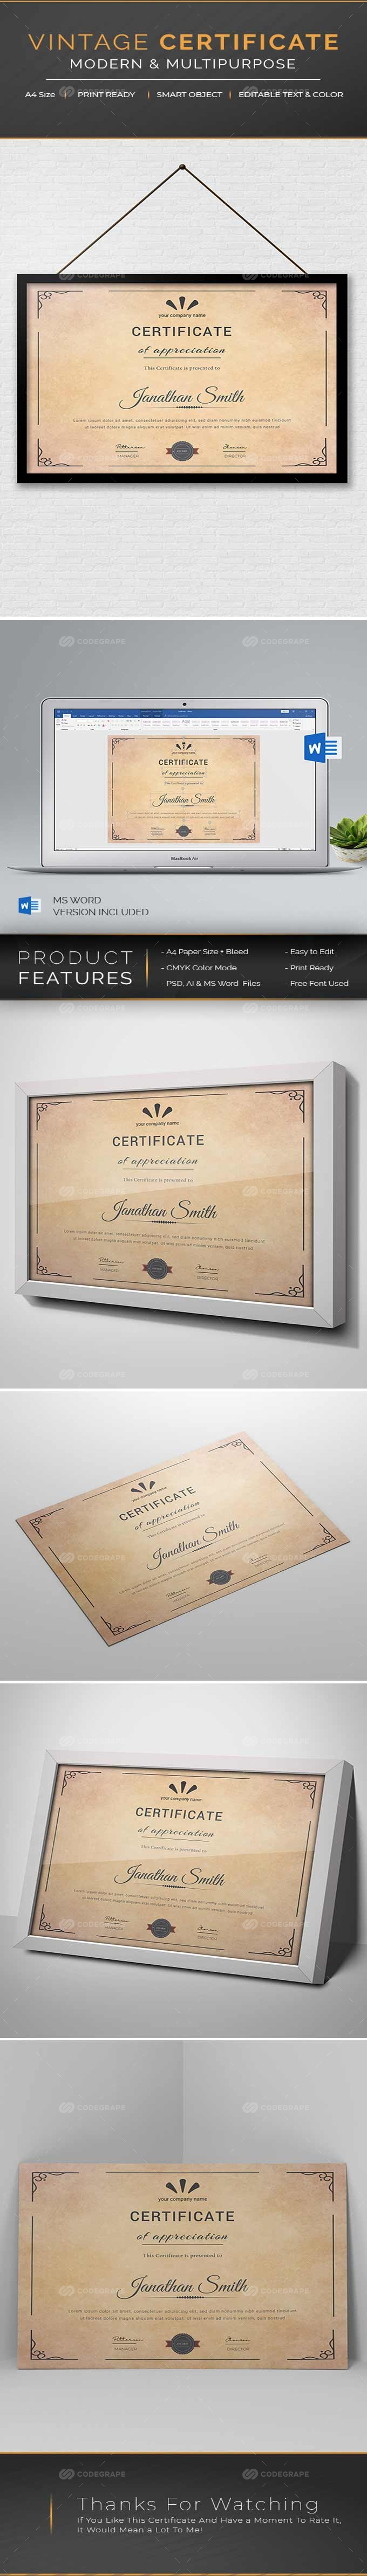 Vintage Certificate Template